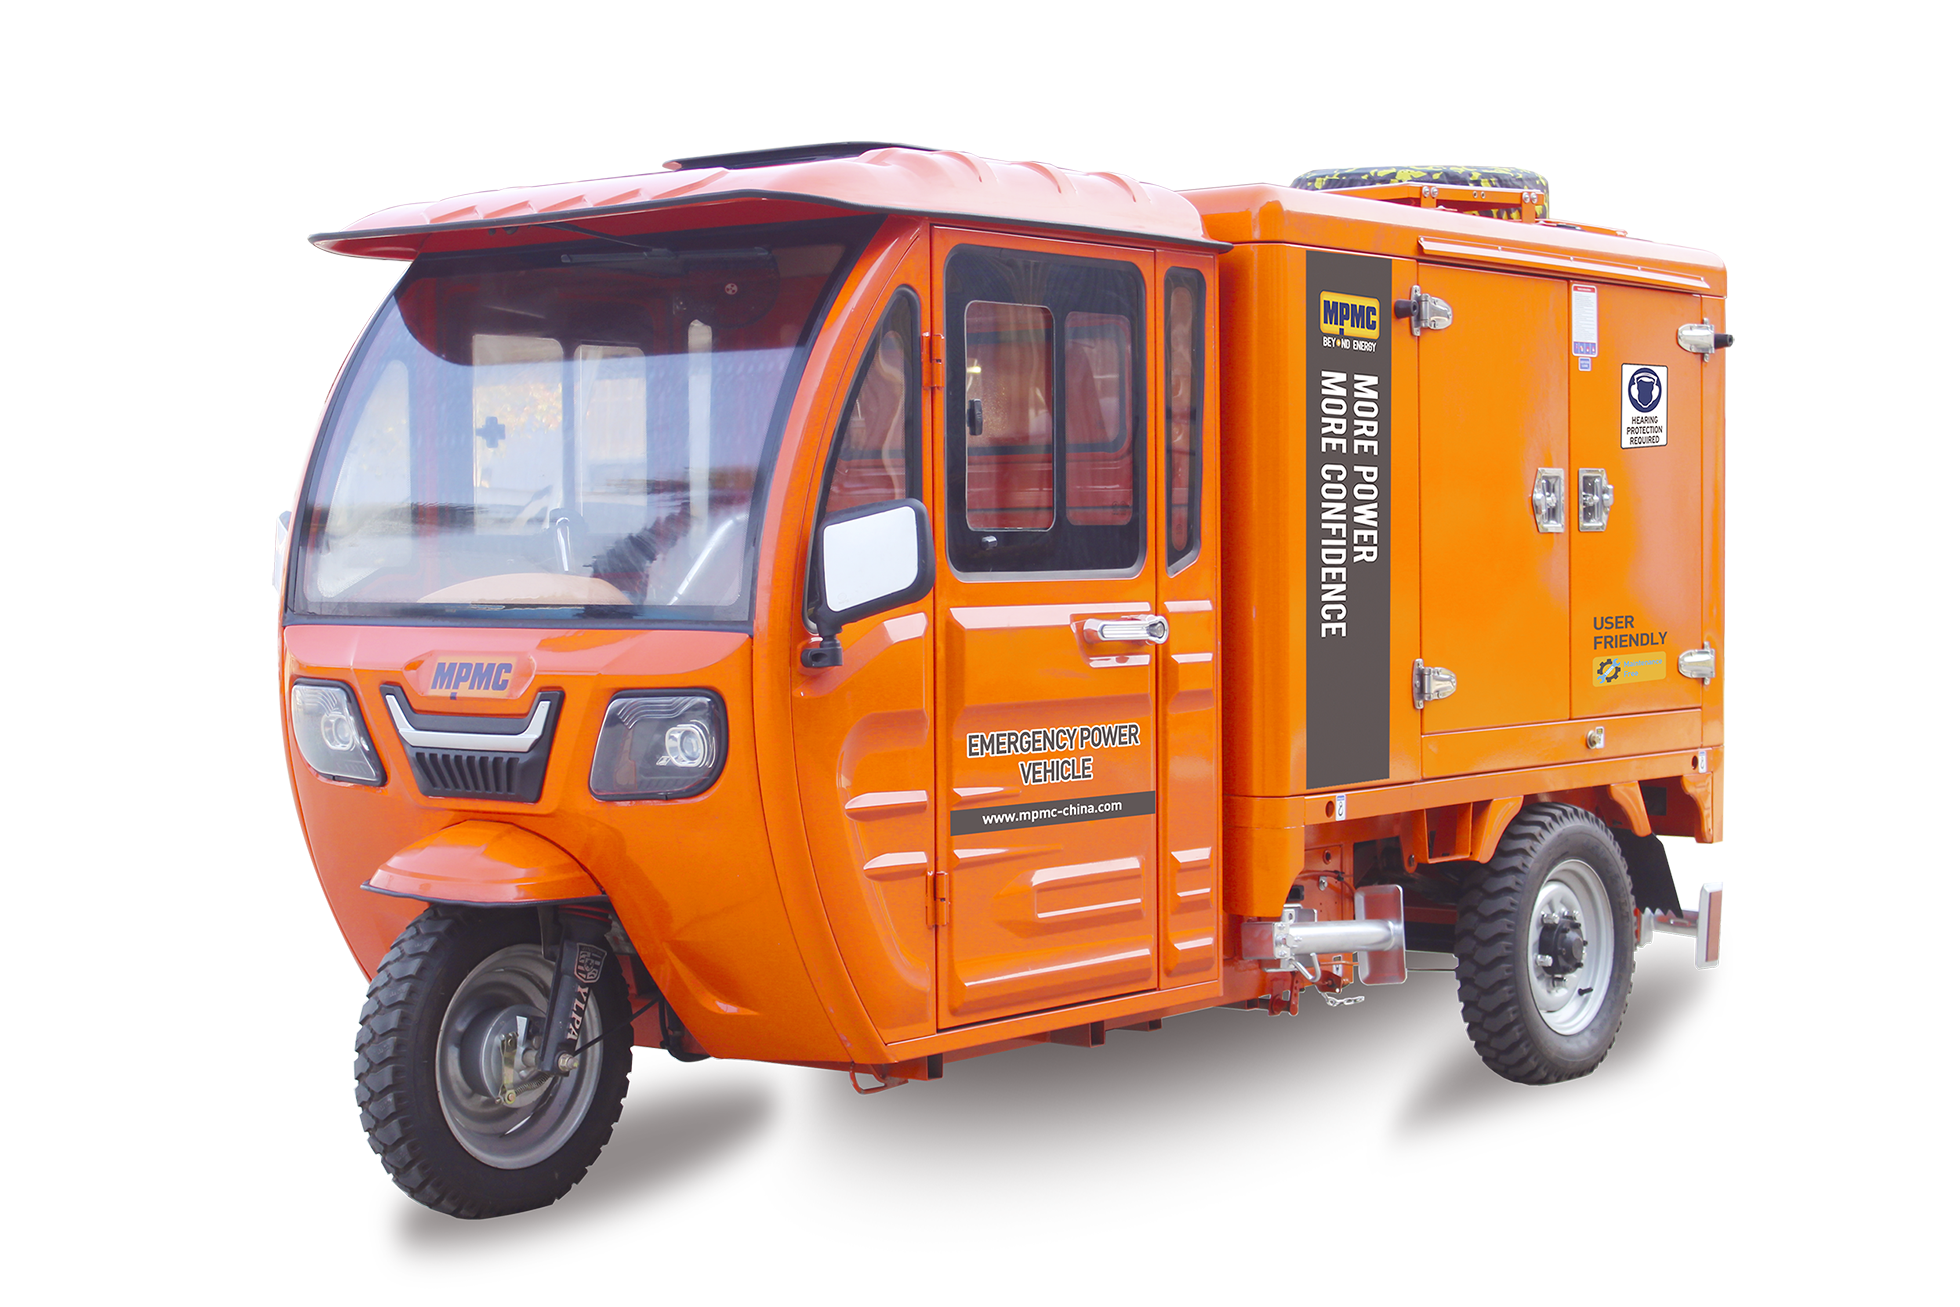 Emergency Vehicles for New Energy Automobile Made By MPMC